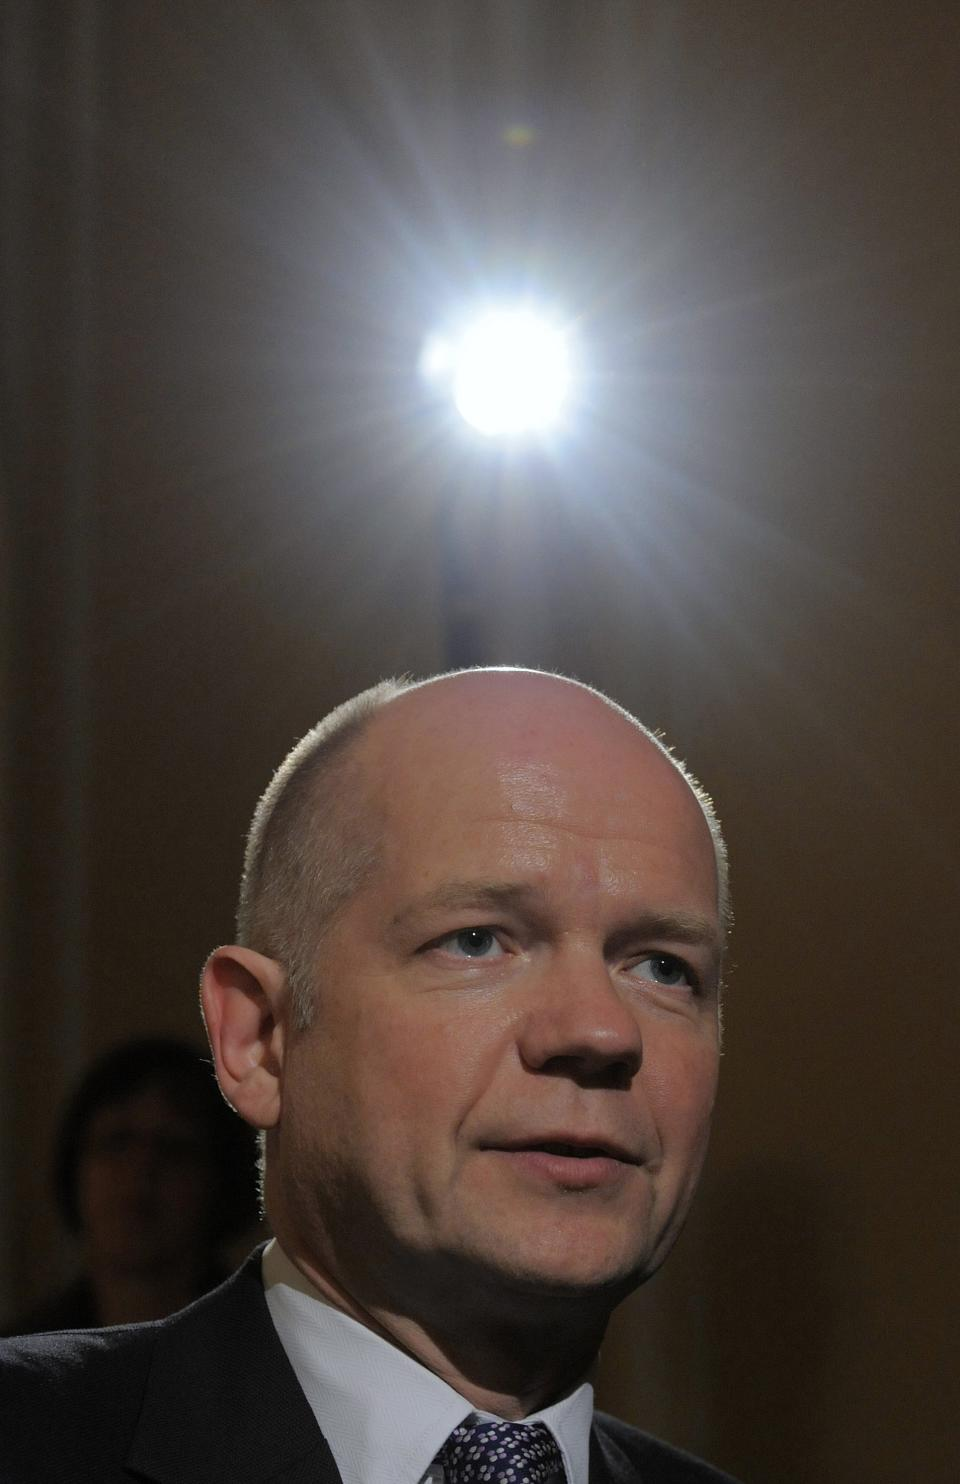 Britain's Foreign Minister William Hague speaks during an interview with The Associated Press and BBC during the International Conference on Security Policy at the hotel 'Bayerischer Hof' in Munich, southern Germany, Friday, Feb. 4, 2011. (AP Photo/Jens Meyer)